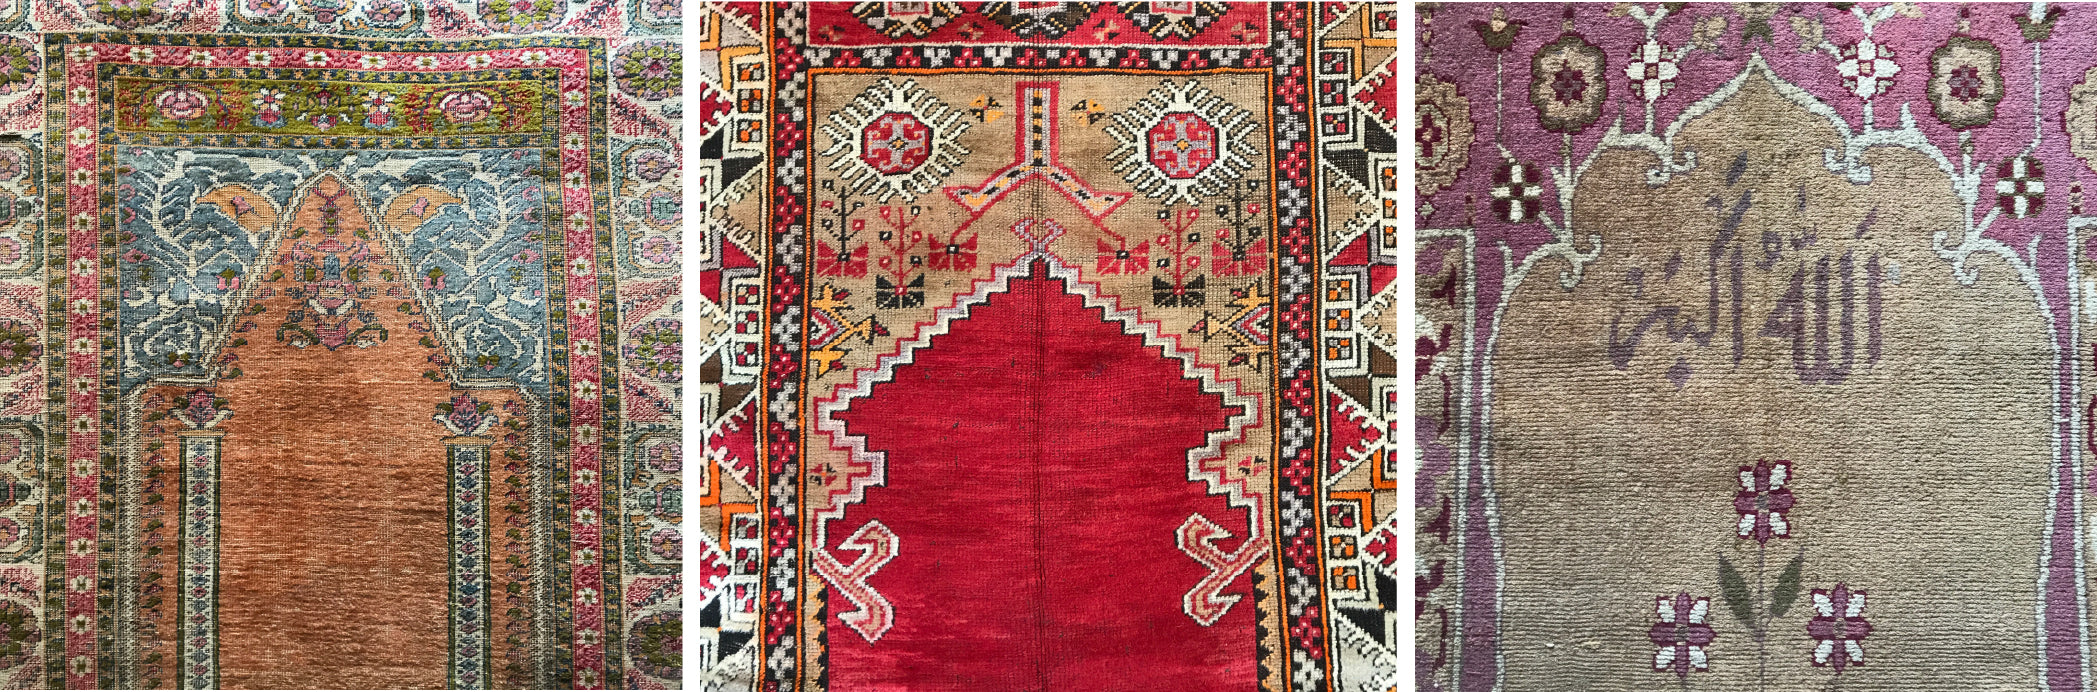 Keyseri and other Turkish Prayer Rugs and Agra Prayer Rug with the top of design, or mihrab detailed